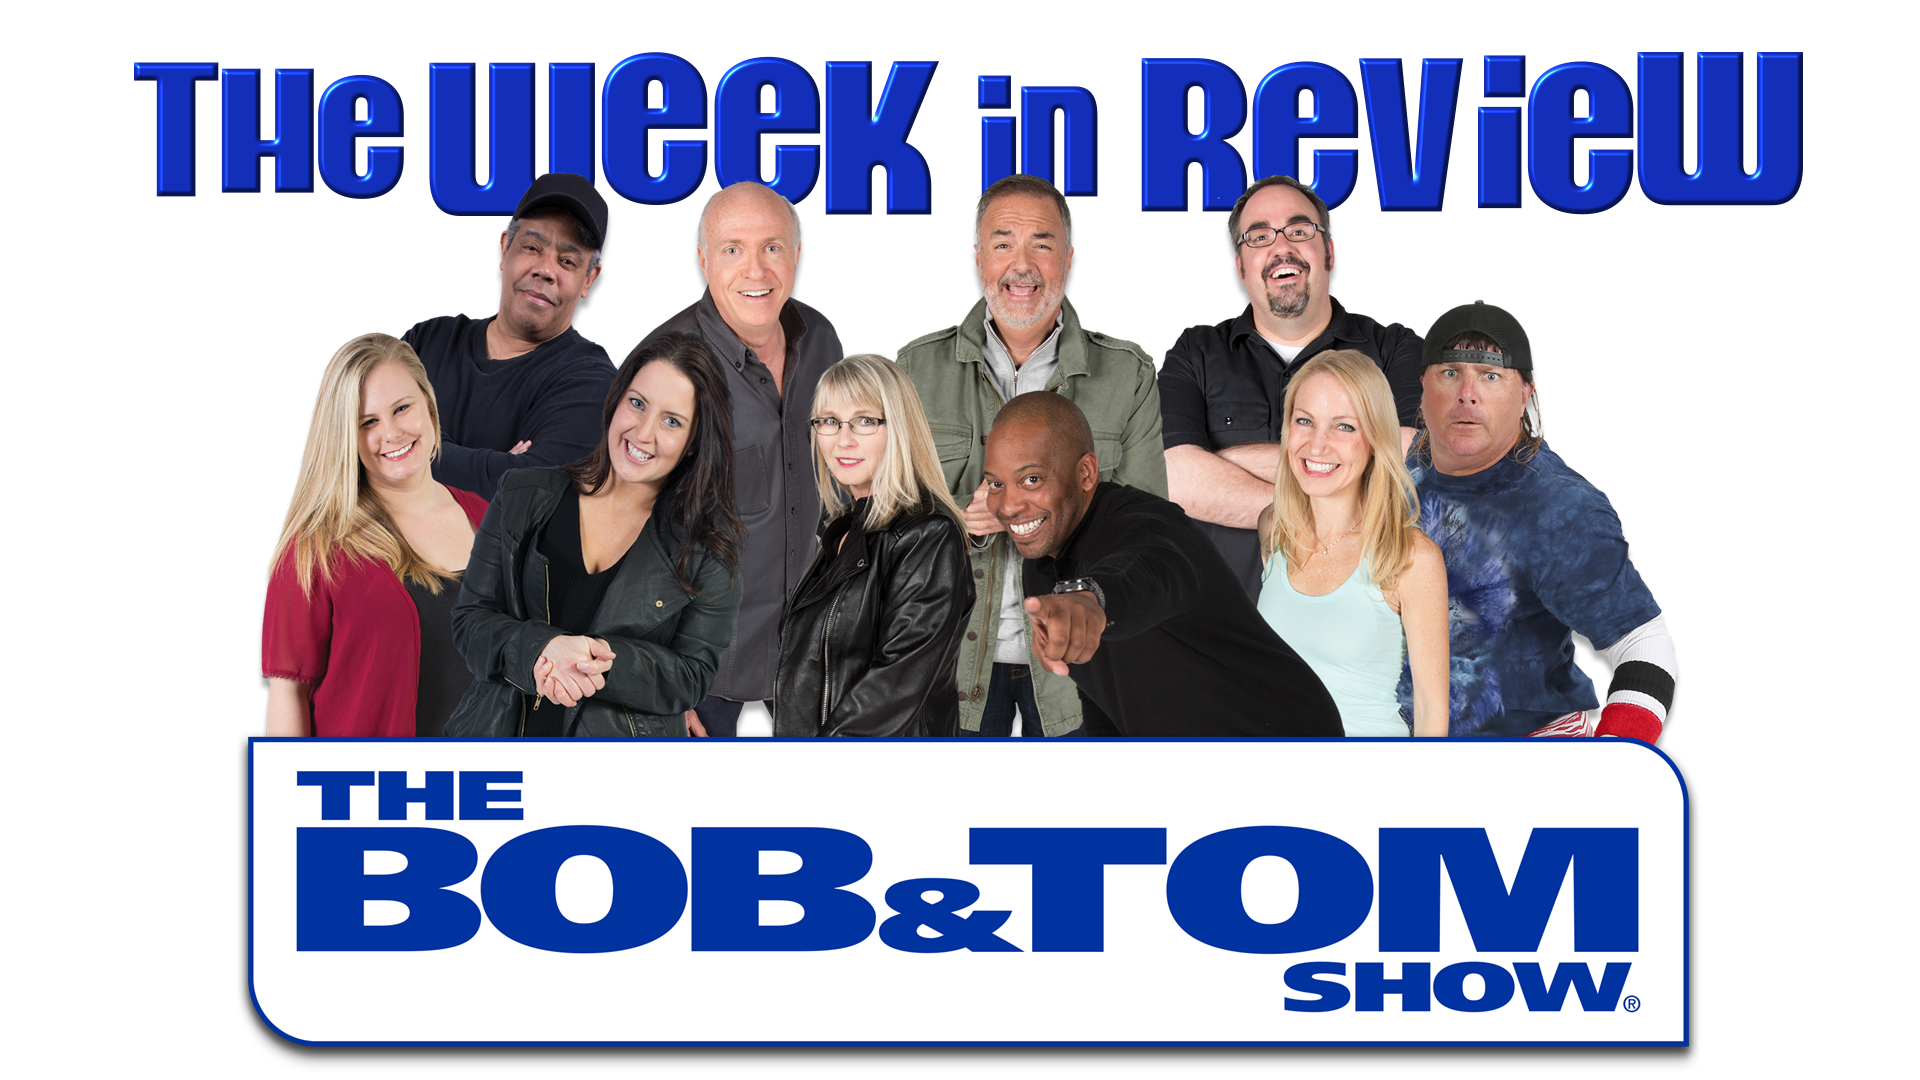 The BOB & TOM Show Week in Review – April 19, 2019